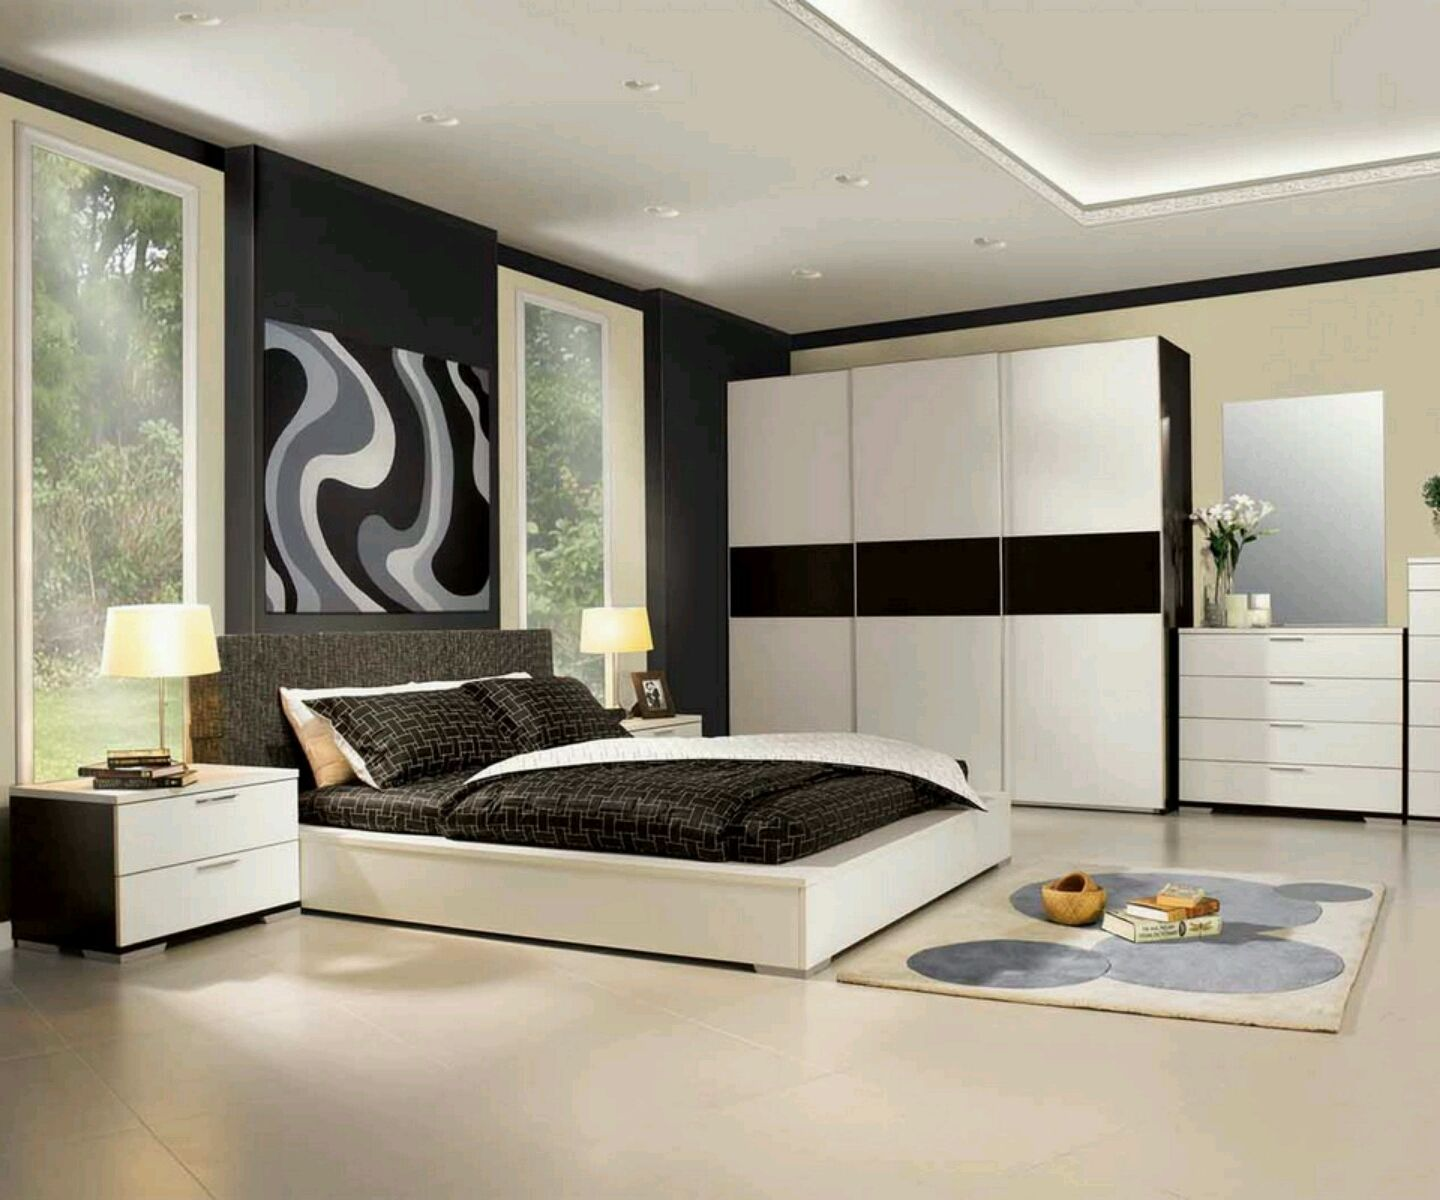 Home Furniture Designs Custom Modern Bedroom Furniture Design For More Pictures And Design Ideas . Design Decoration